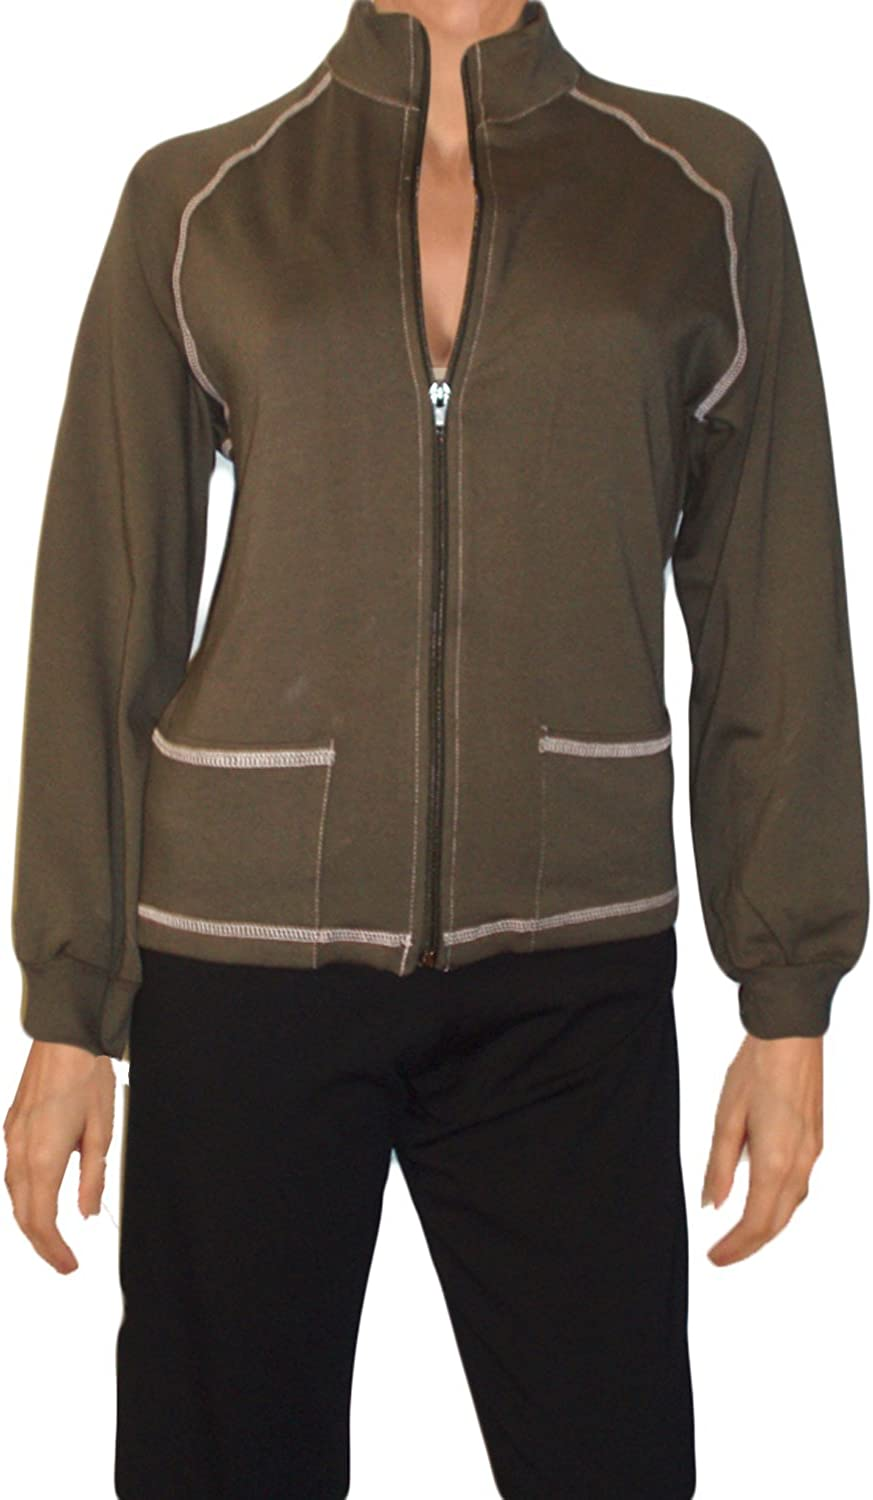 Ooh La La Front Zip Olive Green Jacket